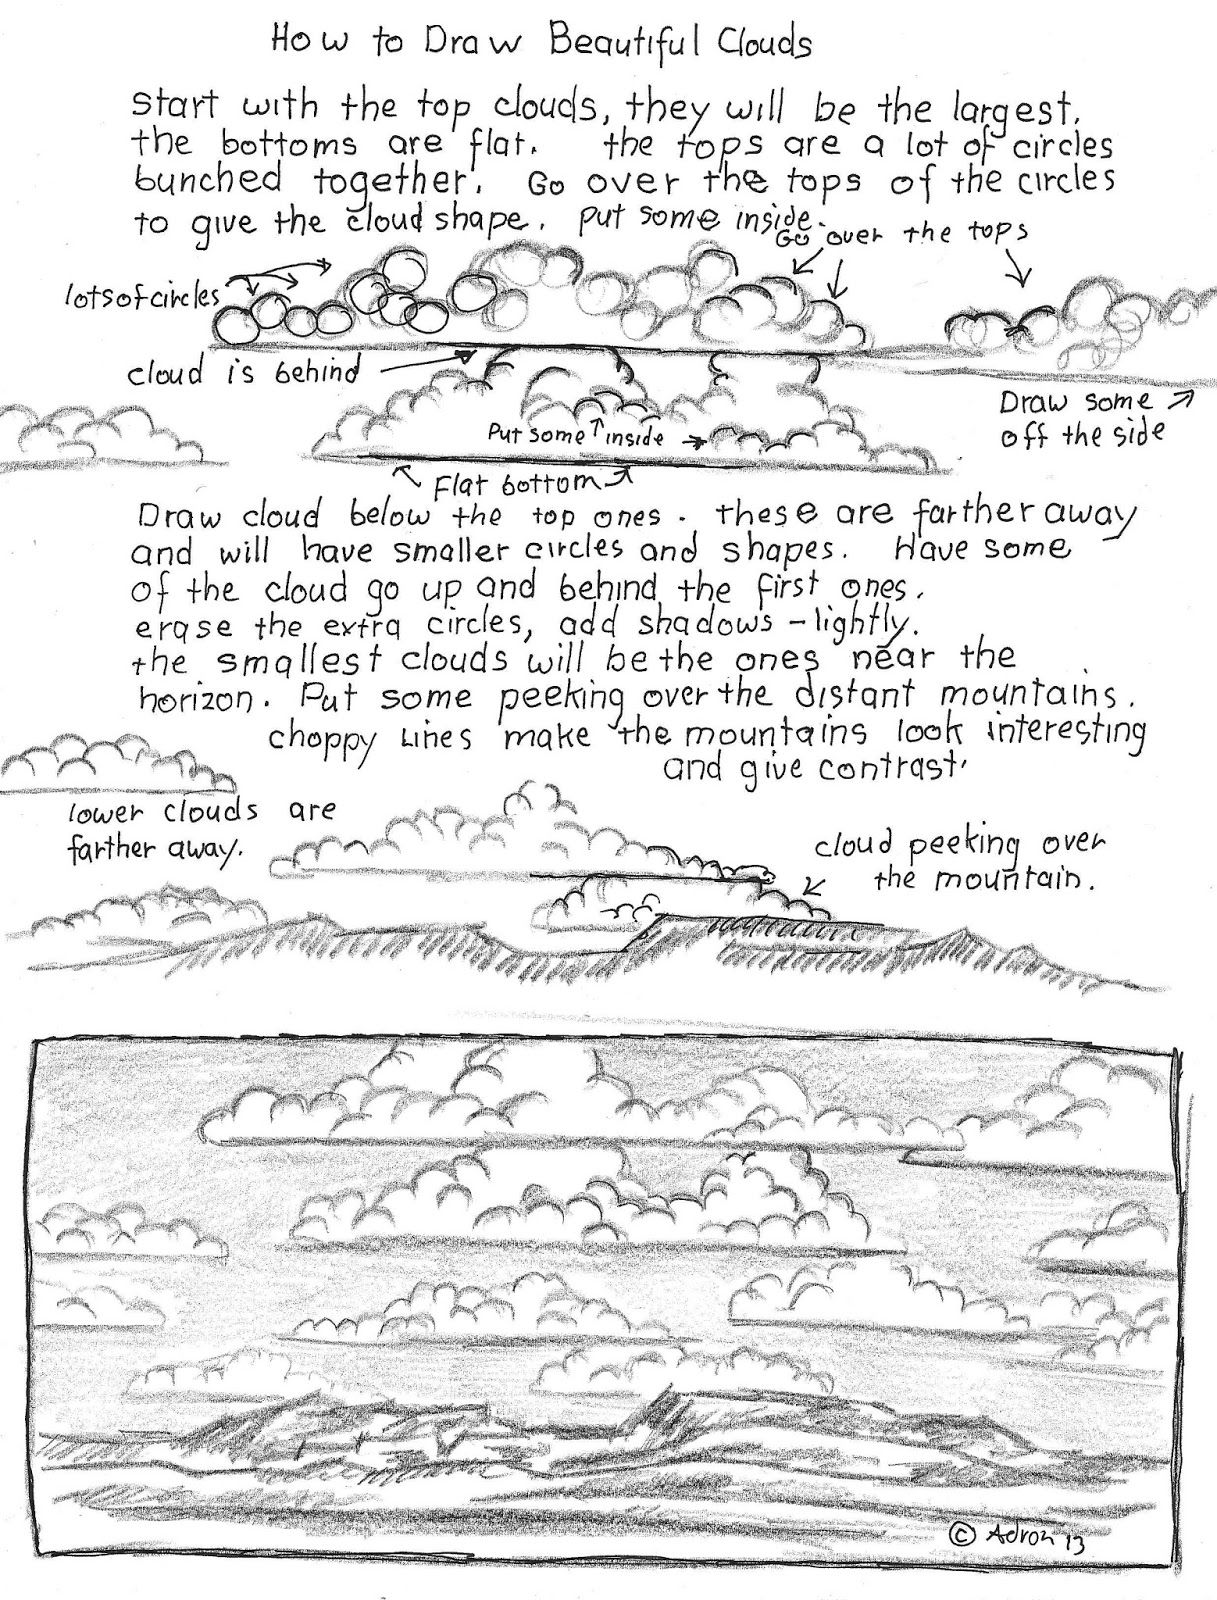 Worksheets Clouds Worksheet how to draw clouds worksheet worksheets for the young artist landscape